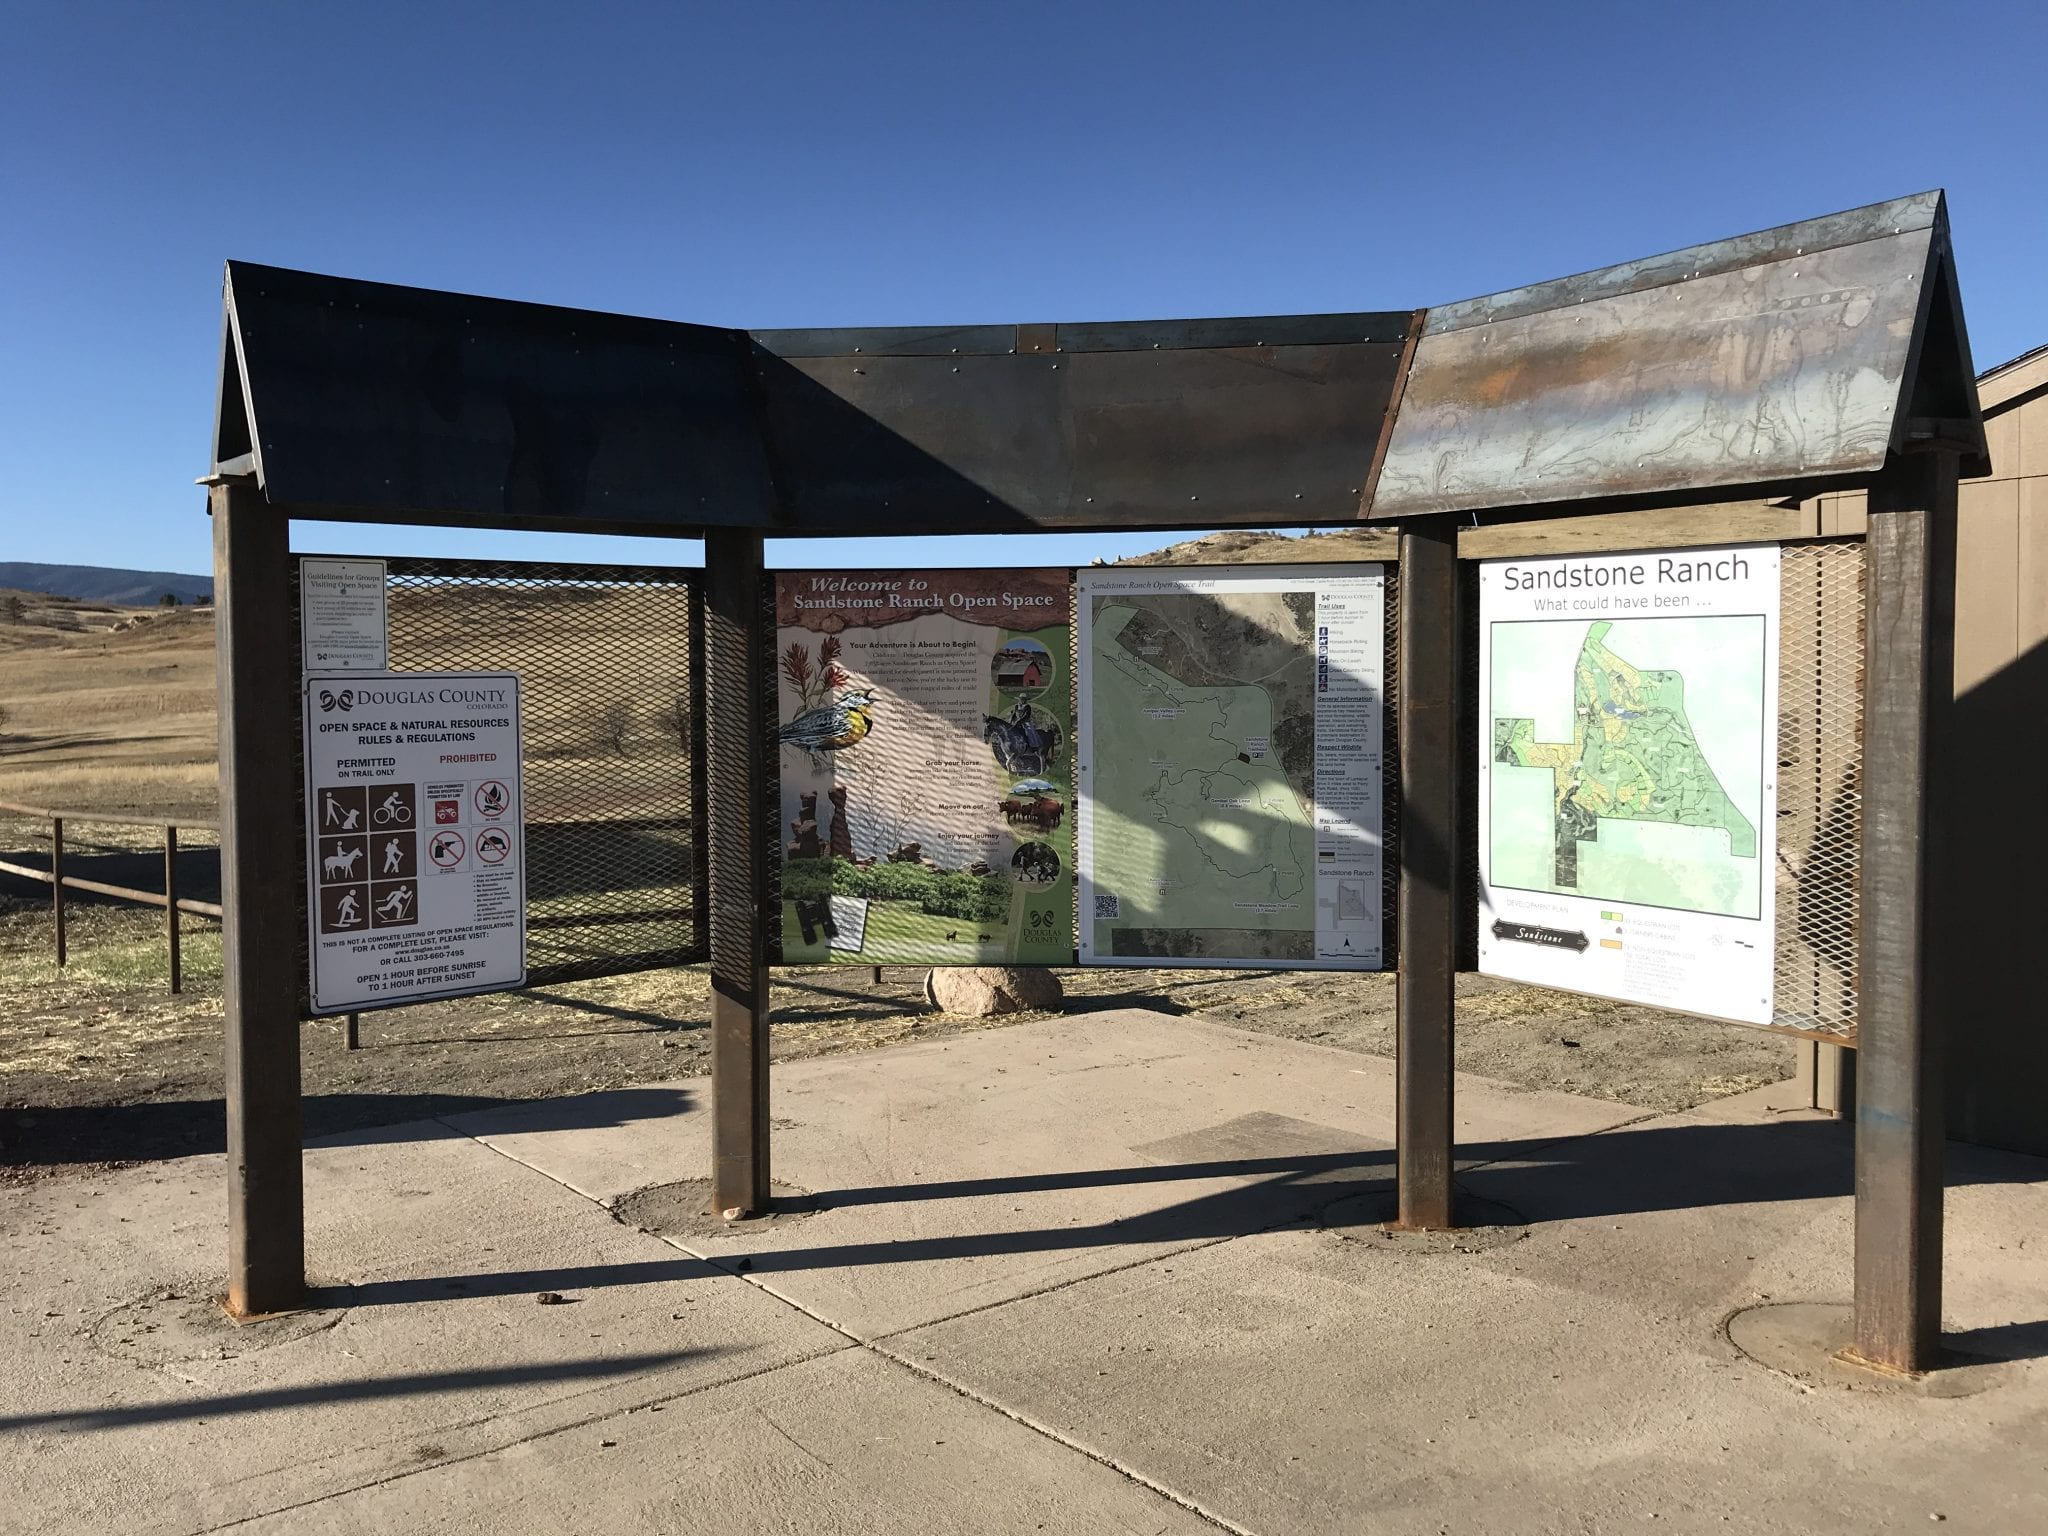 image of information kiosk at sandstone ranch